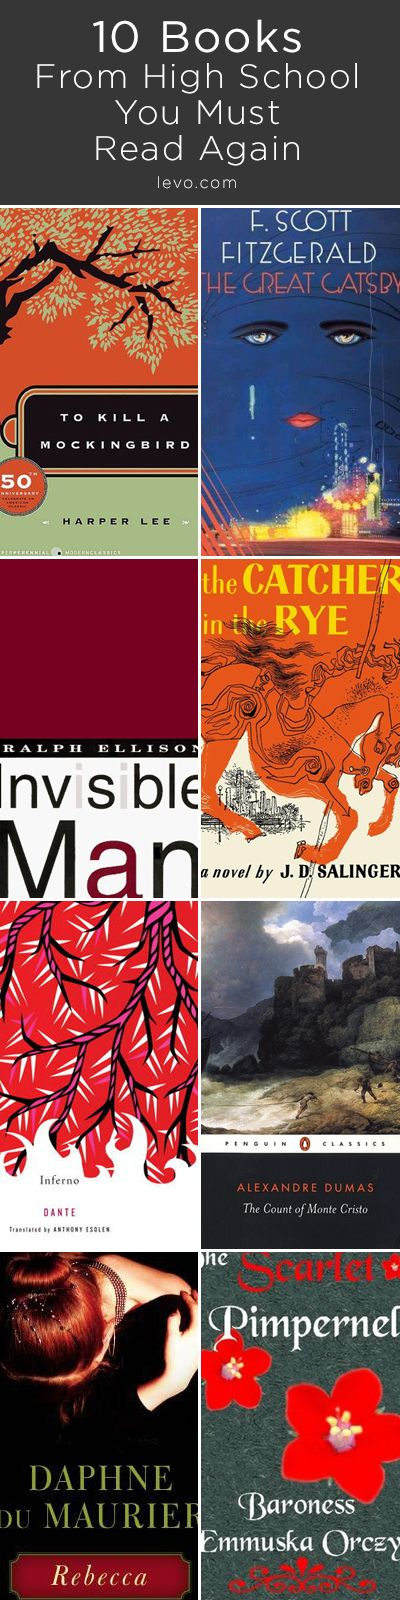 10 Books From High School You Must Read Again | Skimming, Majored ...